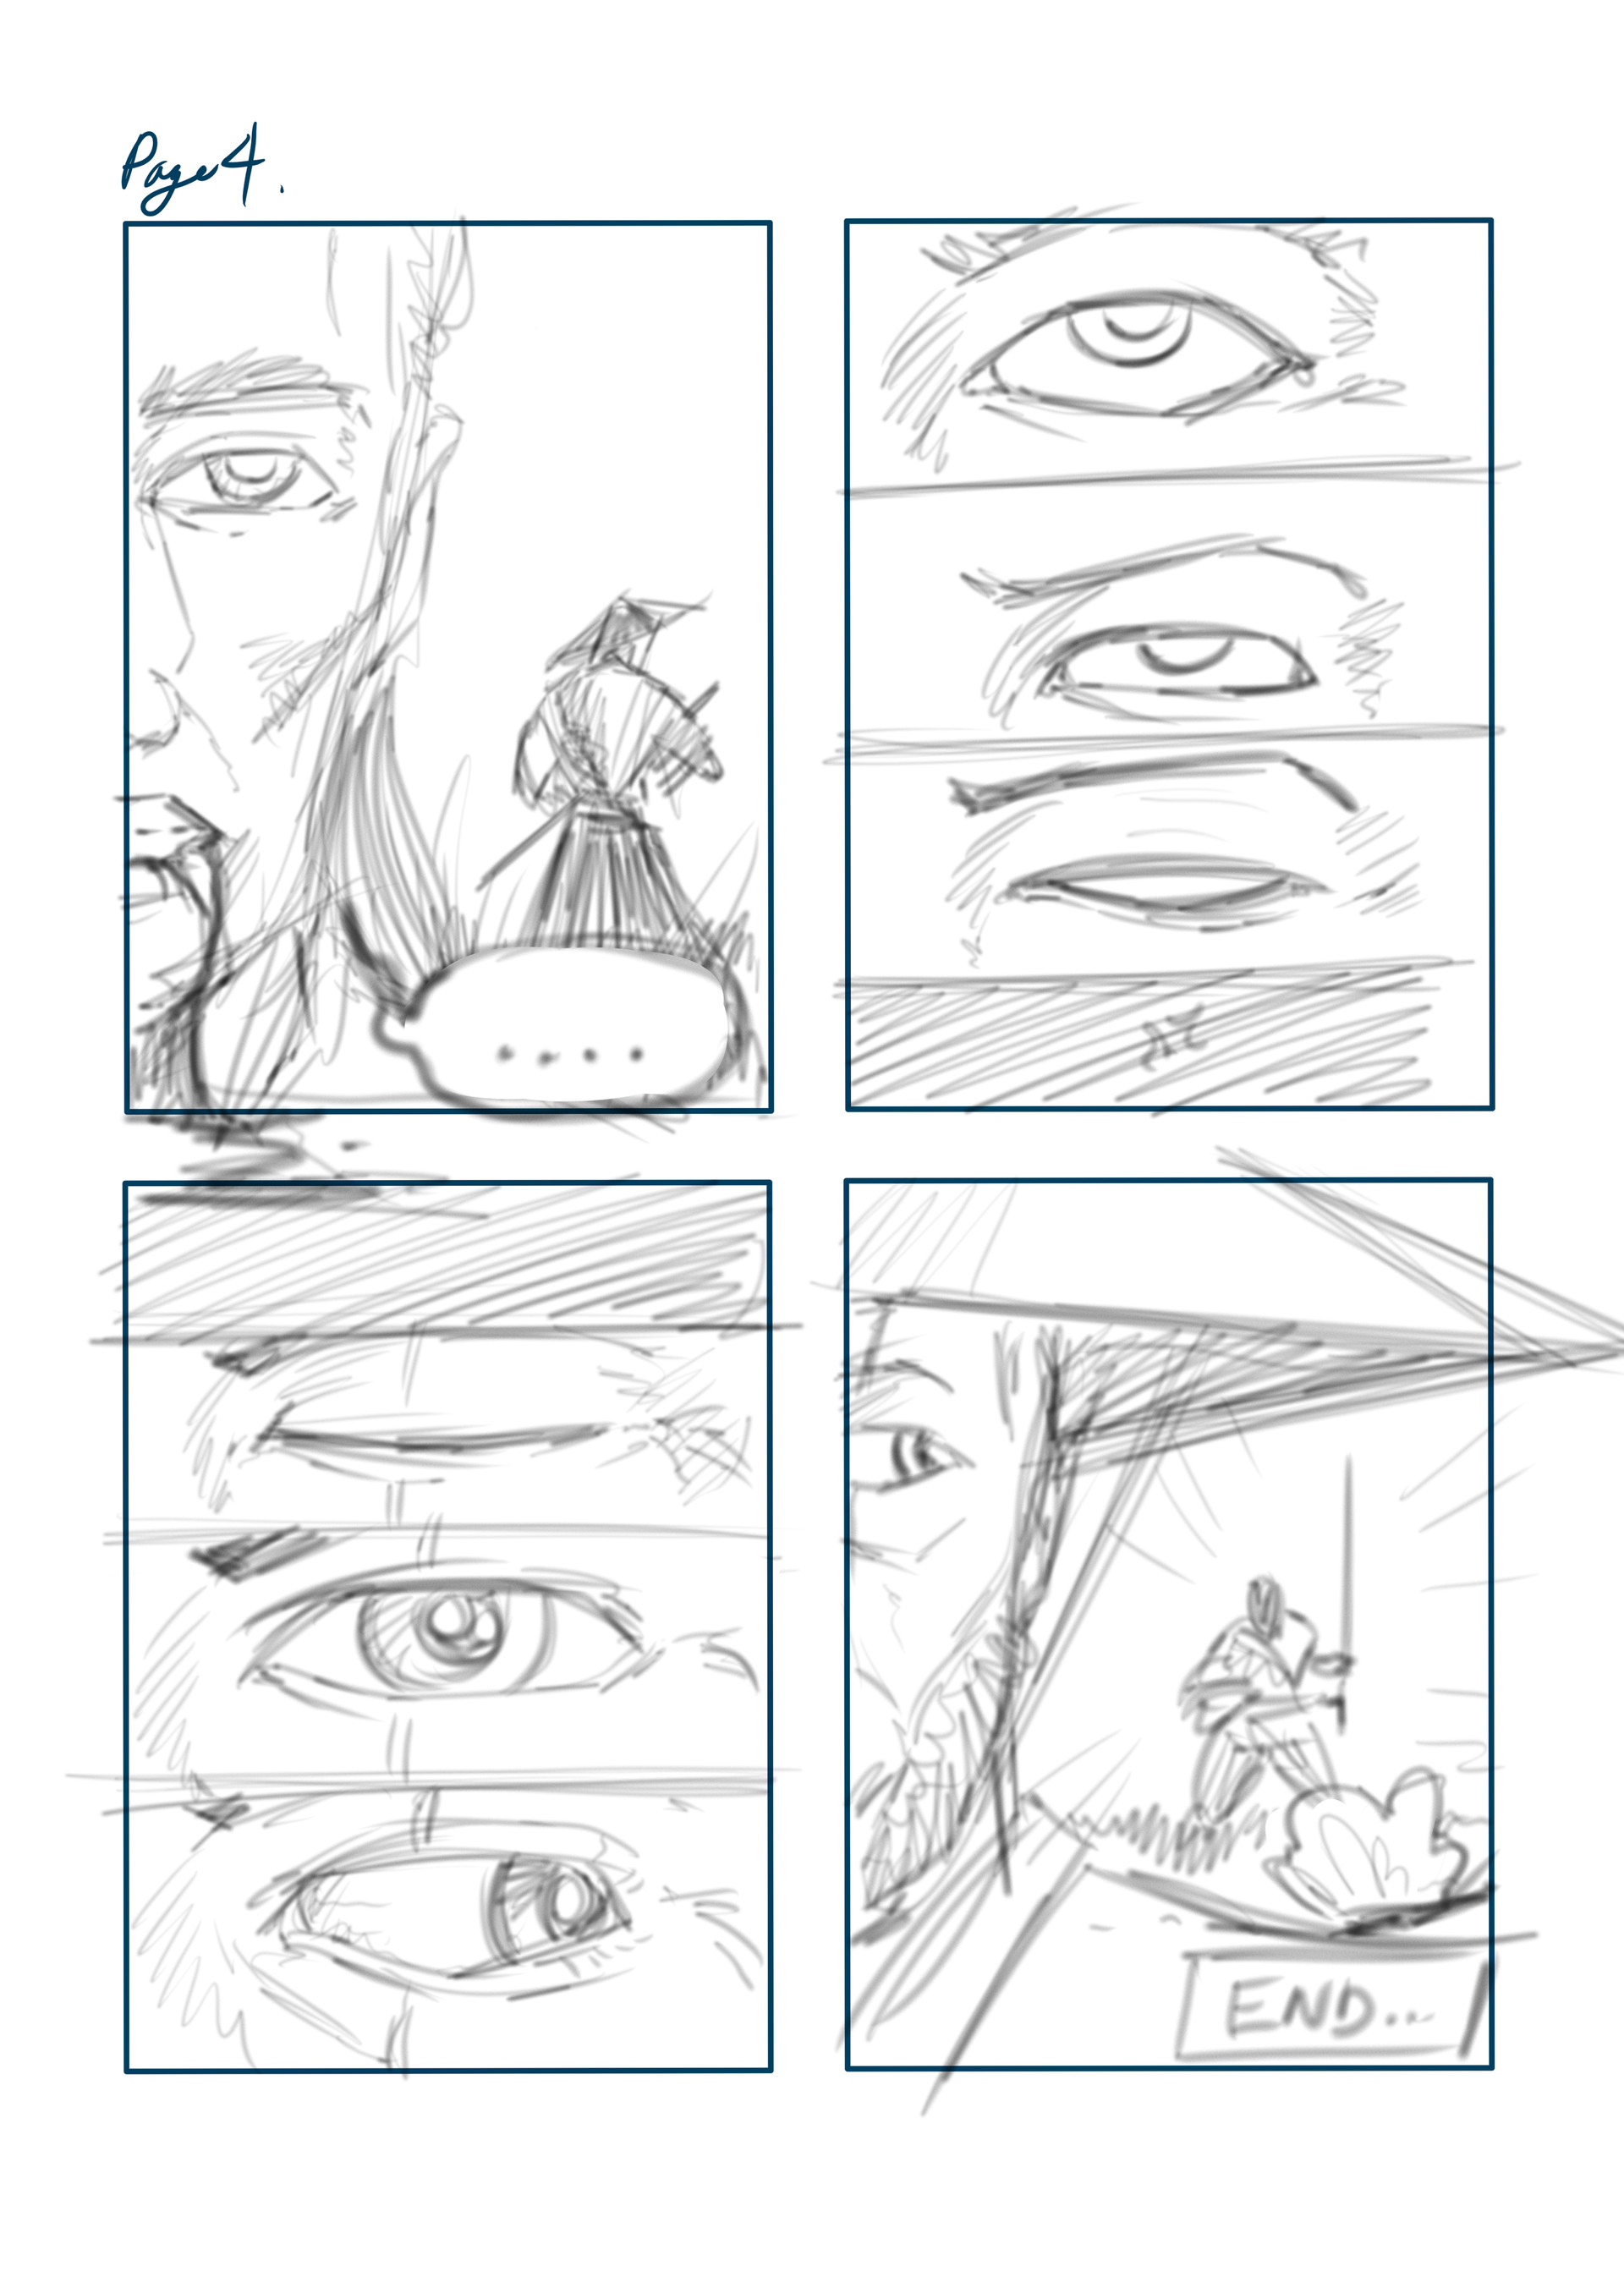 Loc nguyen mini comics page 4pencil